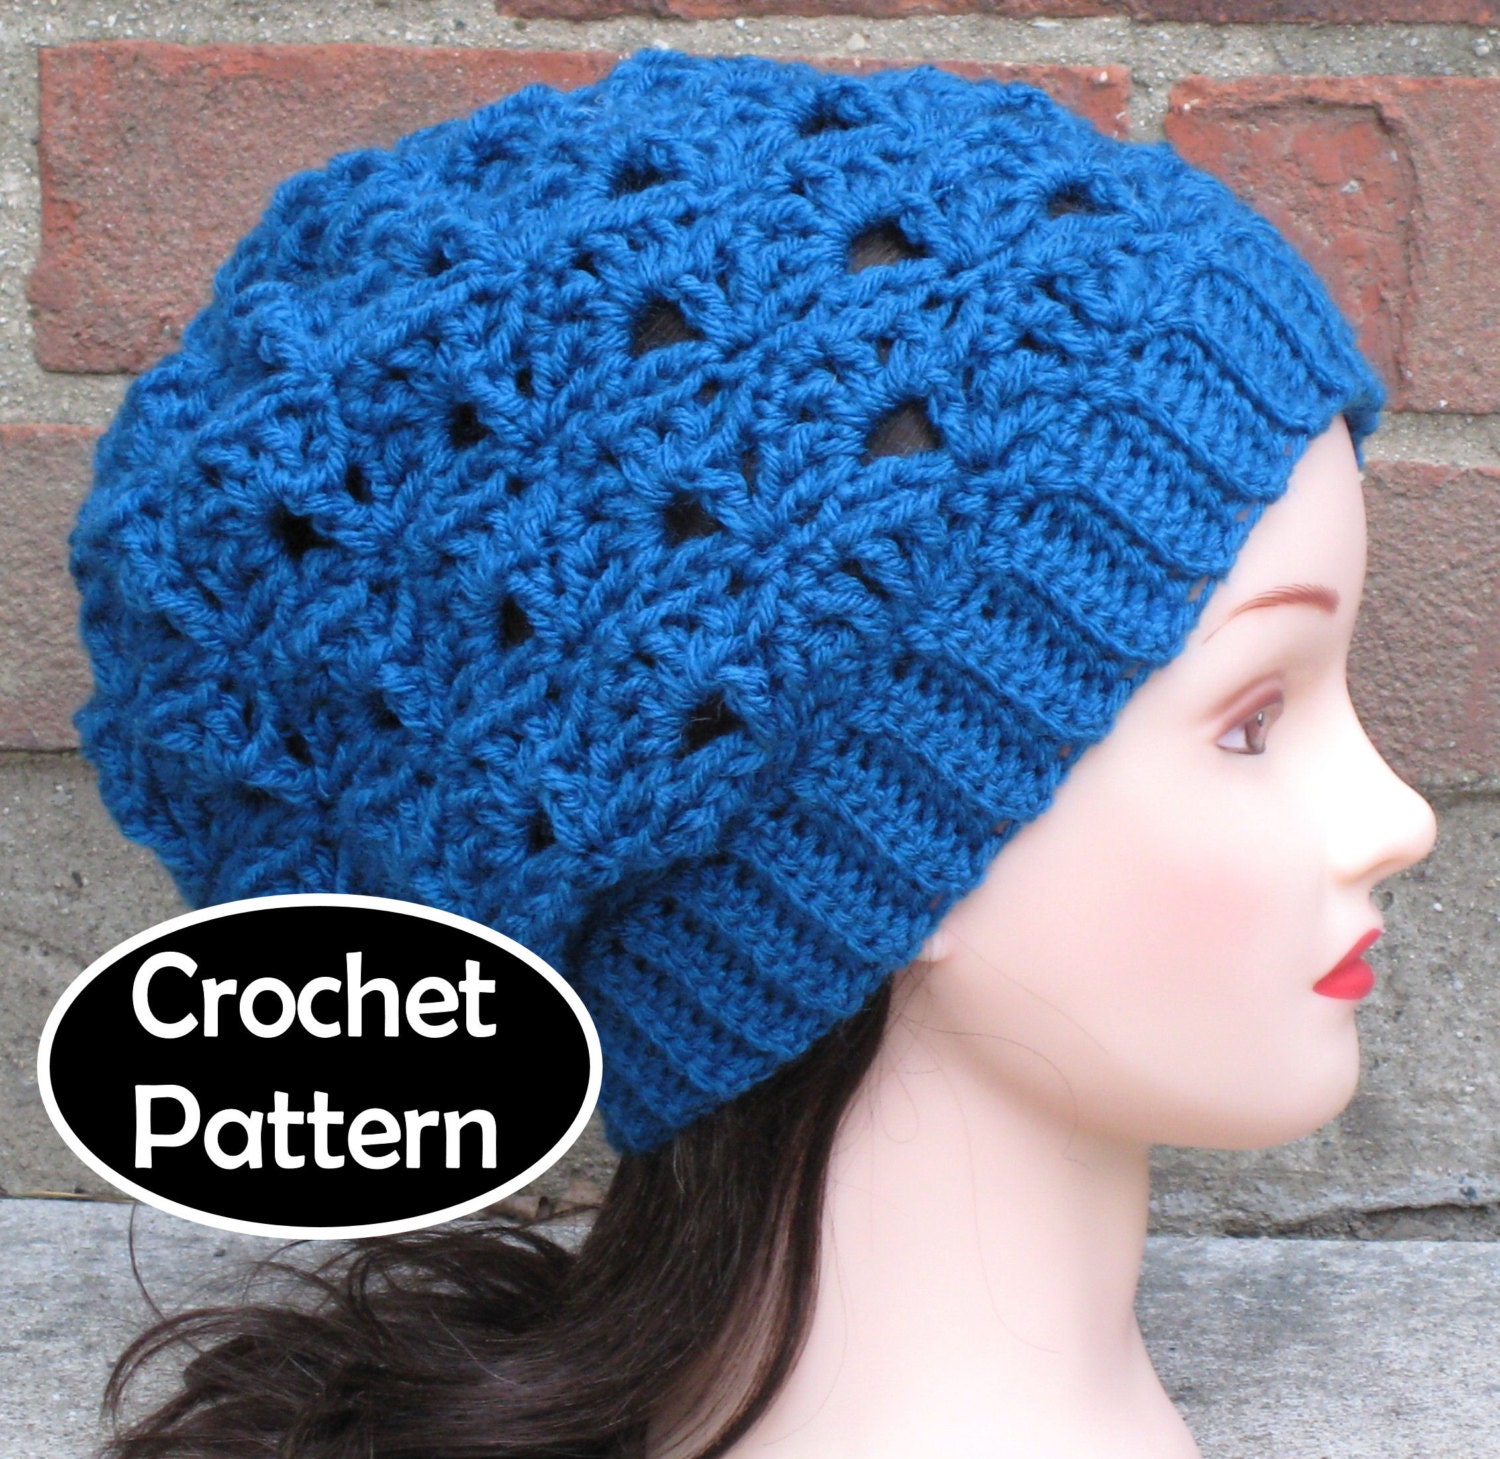 Crochet Hat Pattern Download : CROCHET HAT PATTERN Pdf Instant Download Marina Slouchy